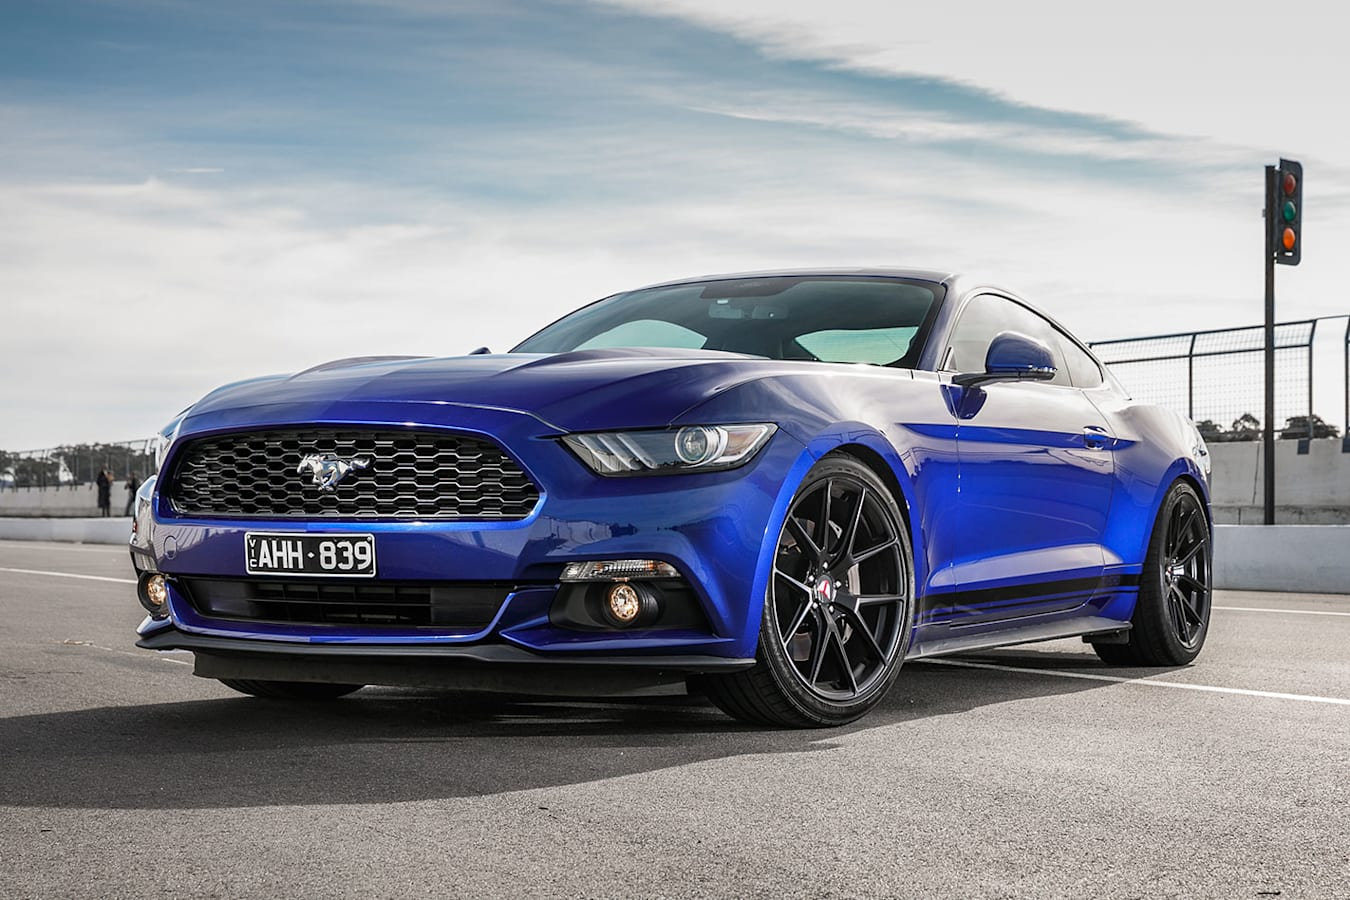 Ford Mustang Hot Tuner 2017 Tickford Eco Boost Jpg